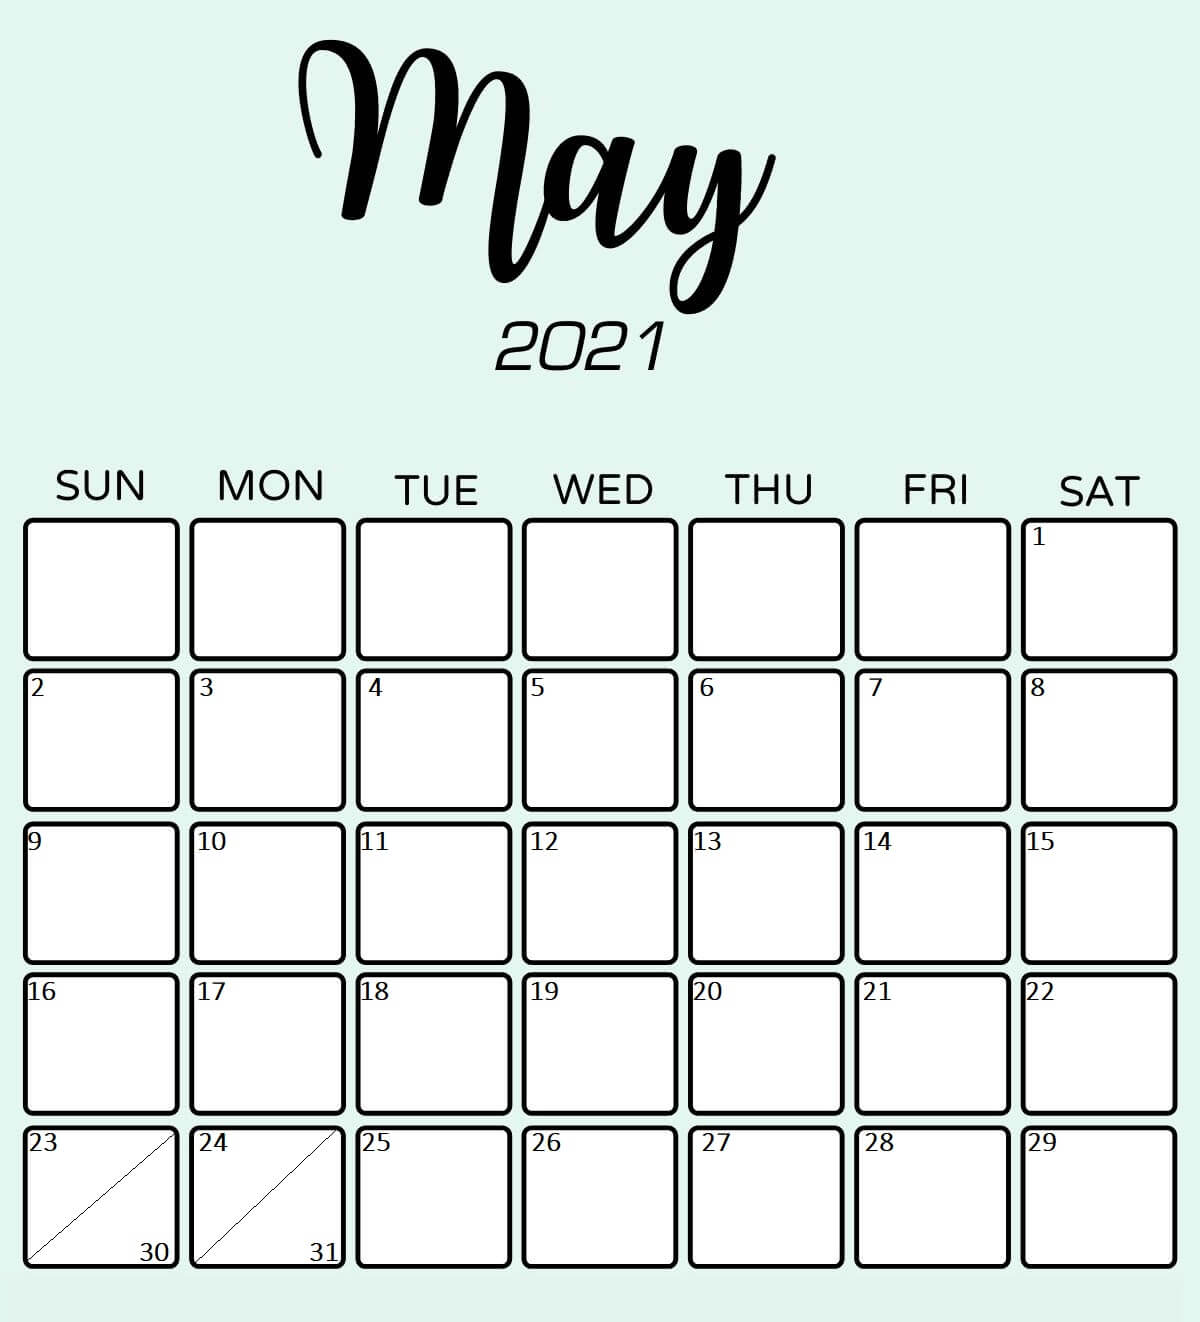 May 2021 Calendar For Wall